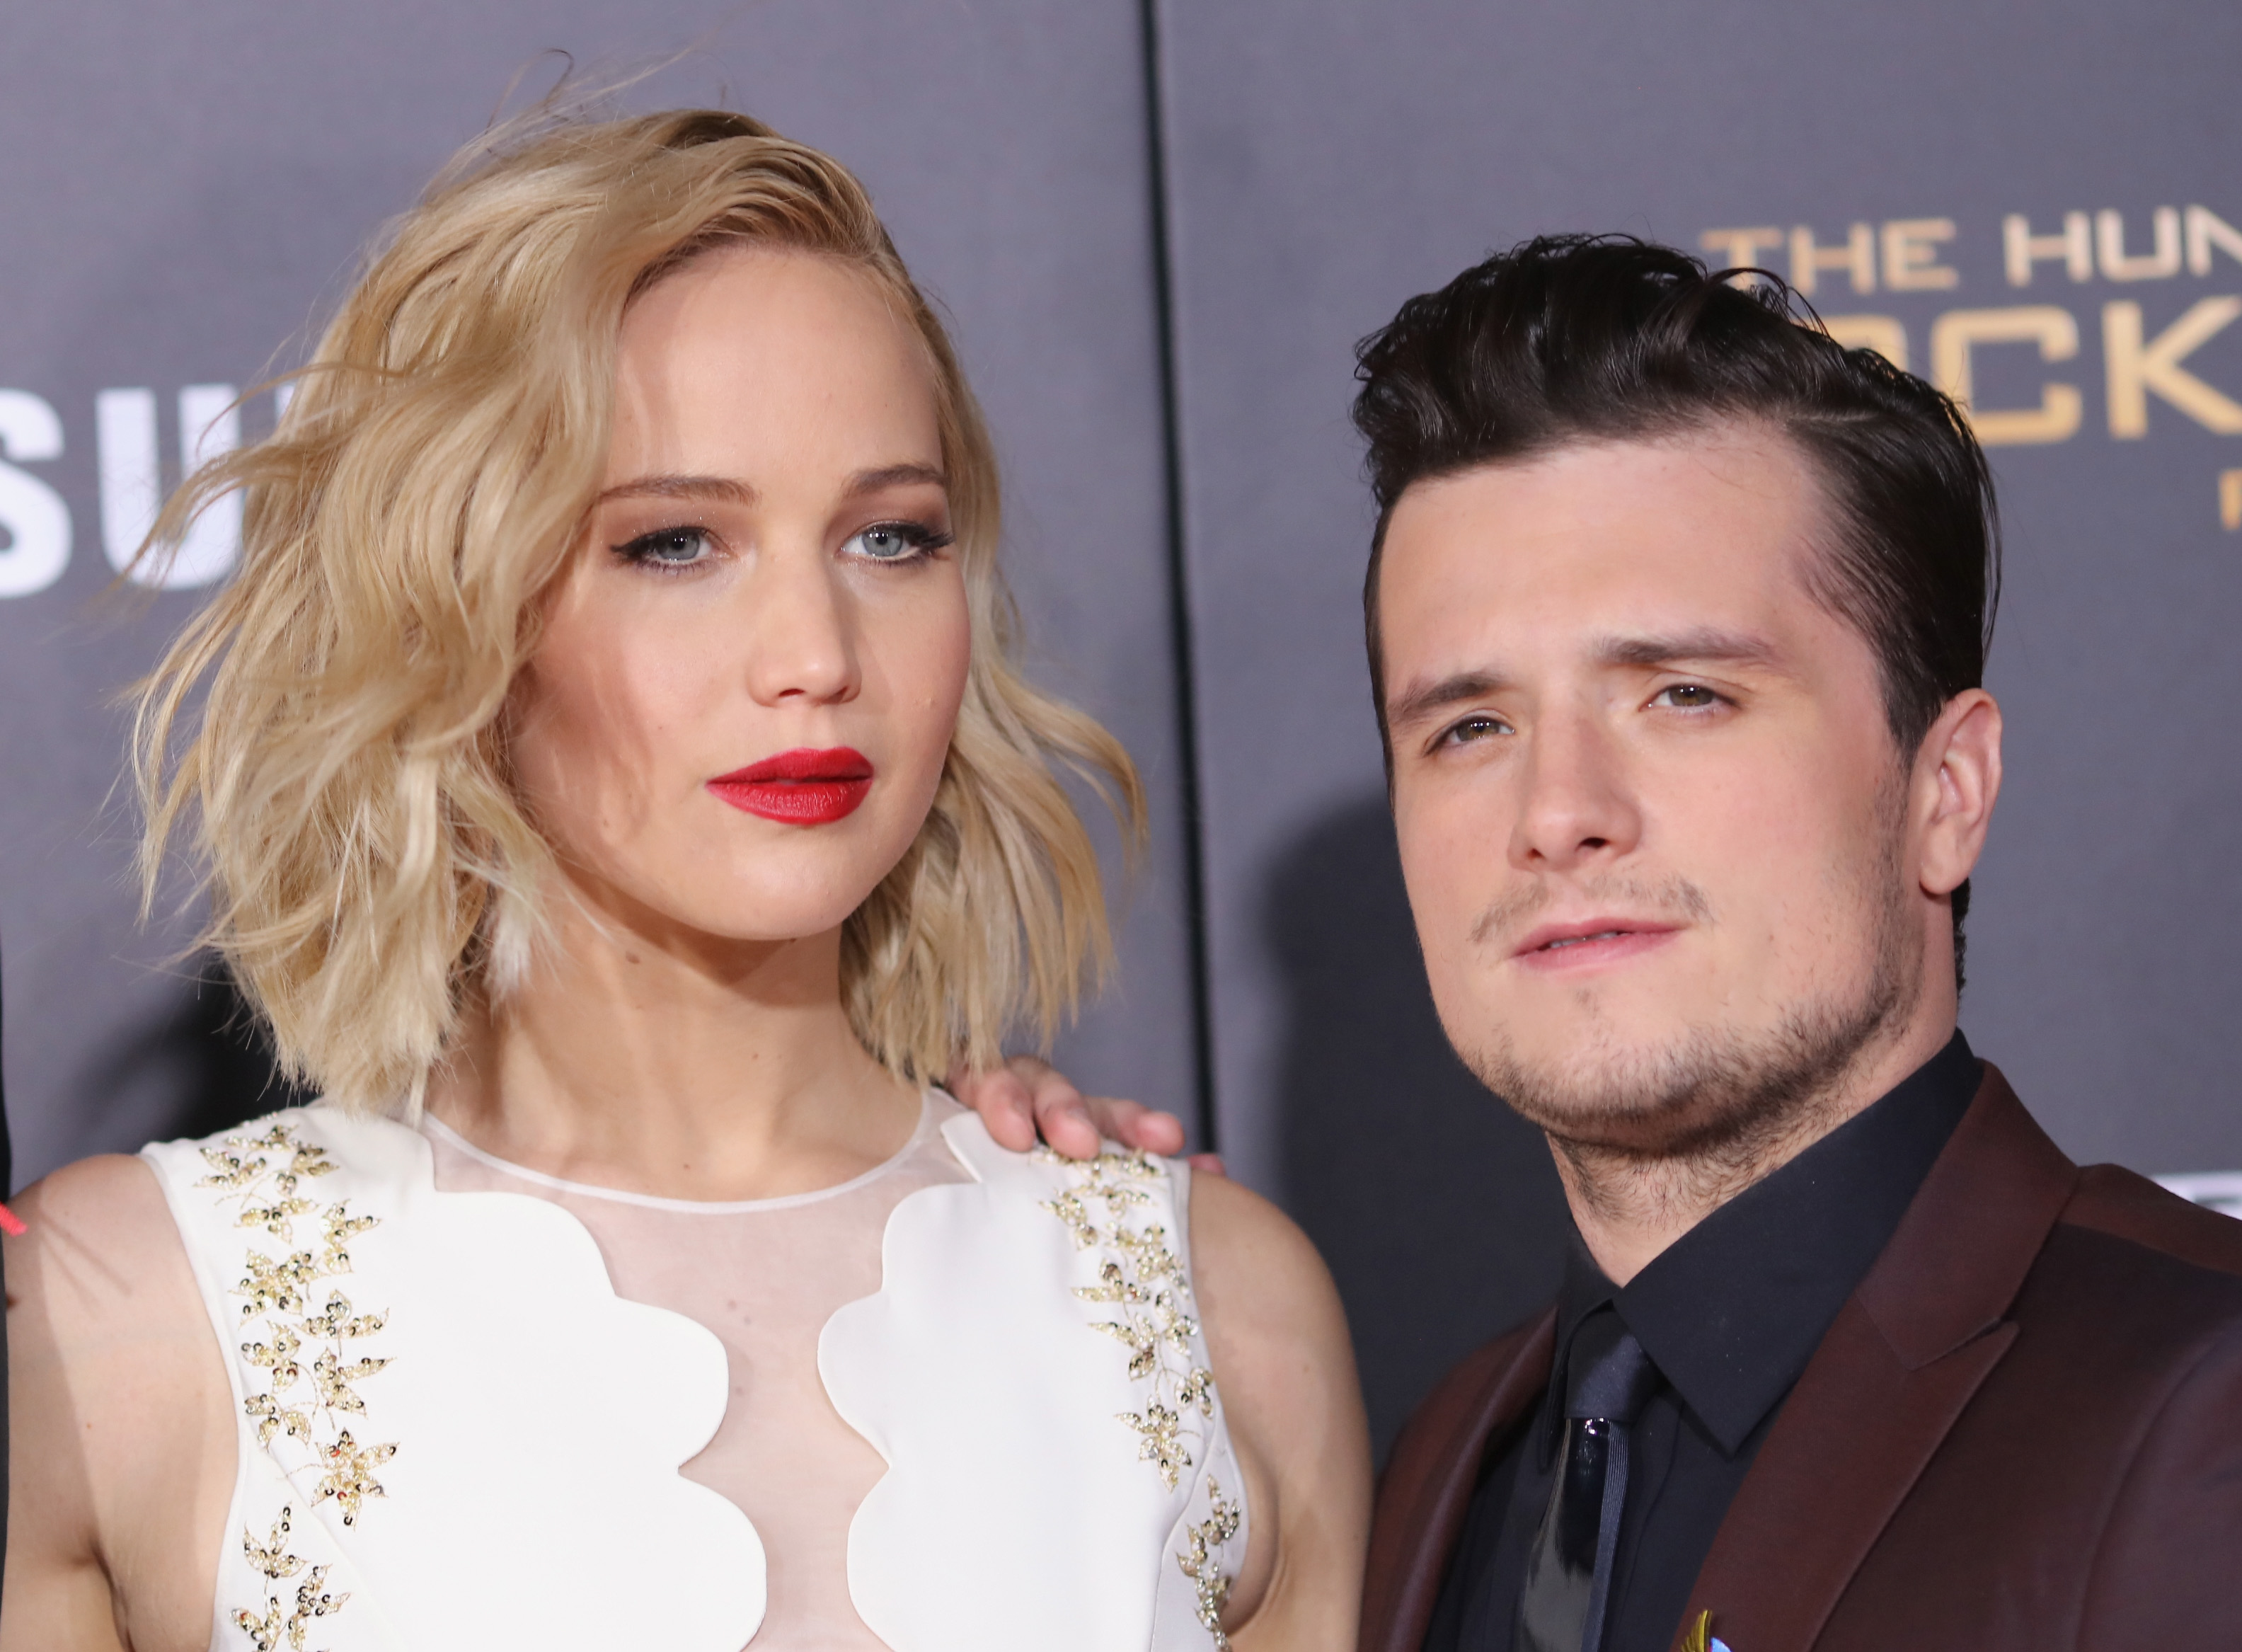 Jennifer Lawrence Picks Josh Hutchersons Beard Hair Proving Theyre A Great Couple Off Screen On